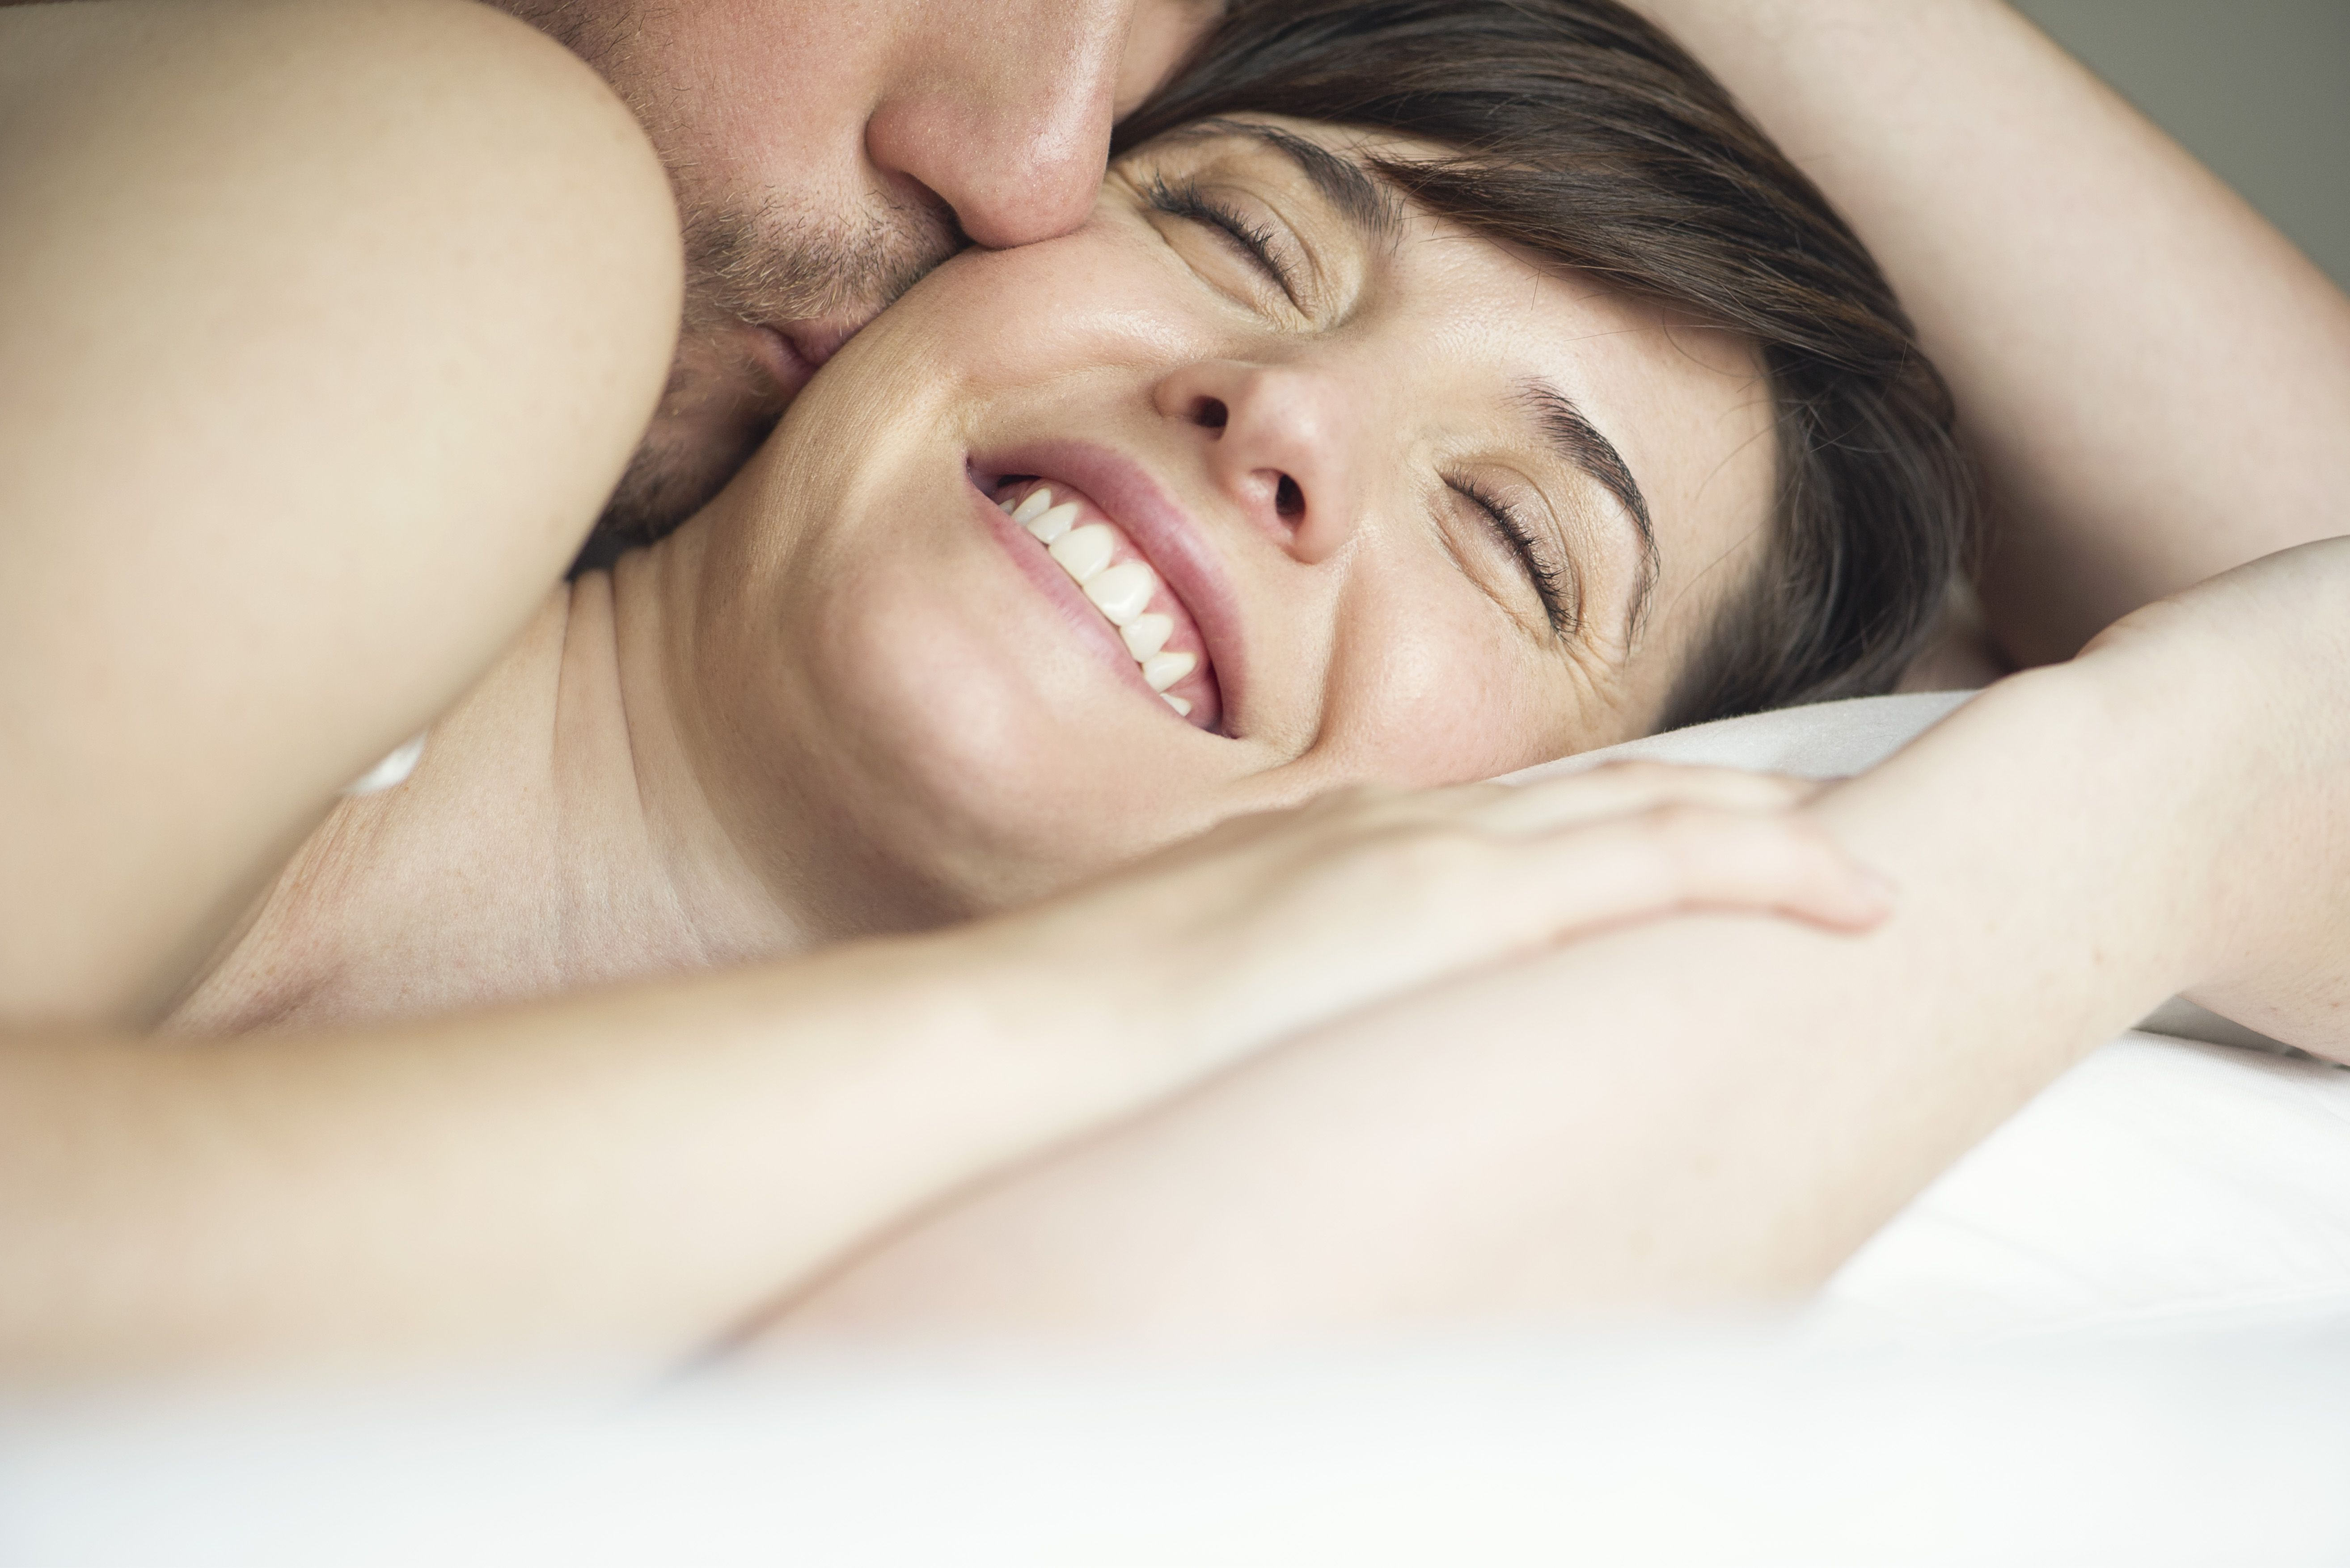 How to Have Safer Sex With Your STI-Positive Partner